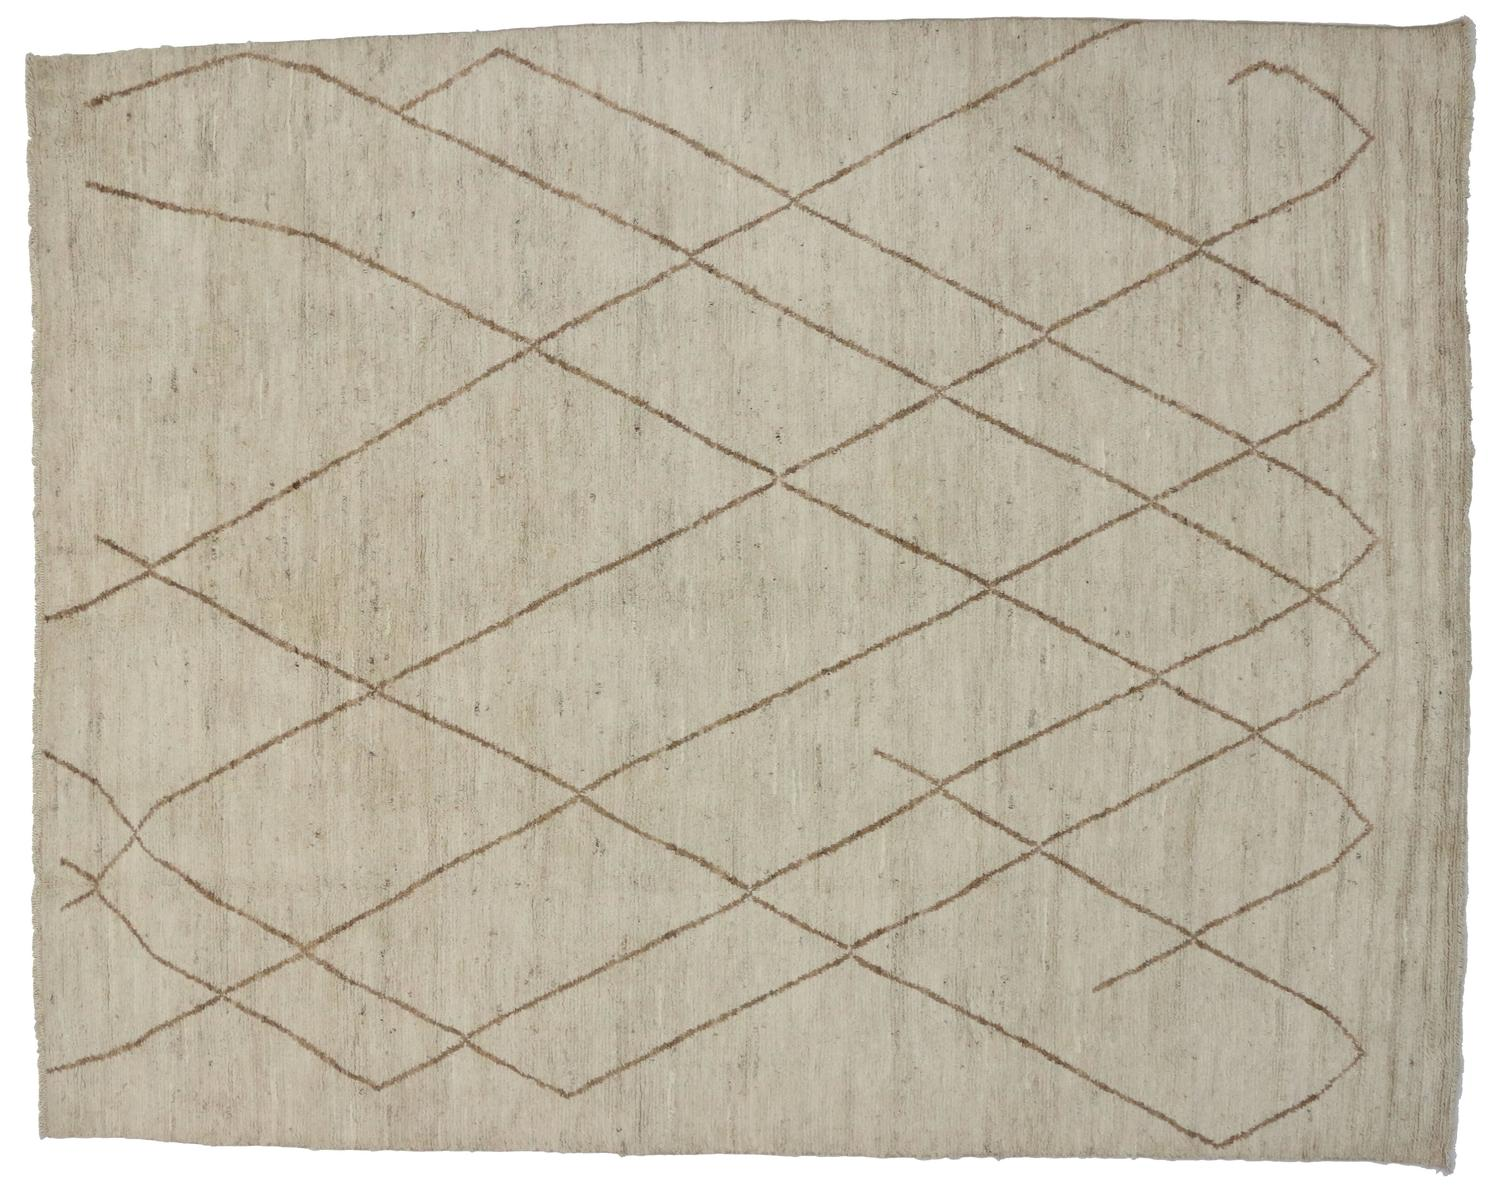 Contemporary Moroccan Area Rug with Modern Design For Sale at 1stdibs